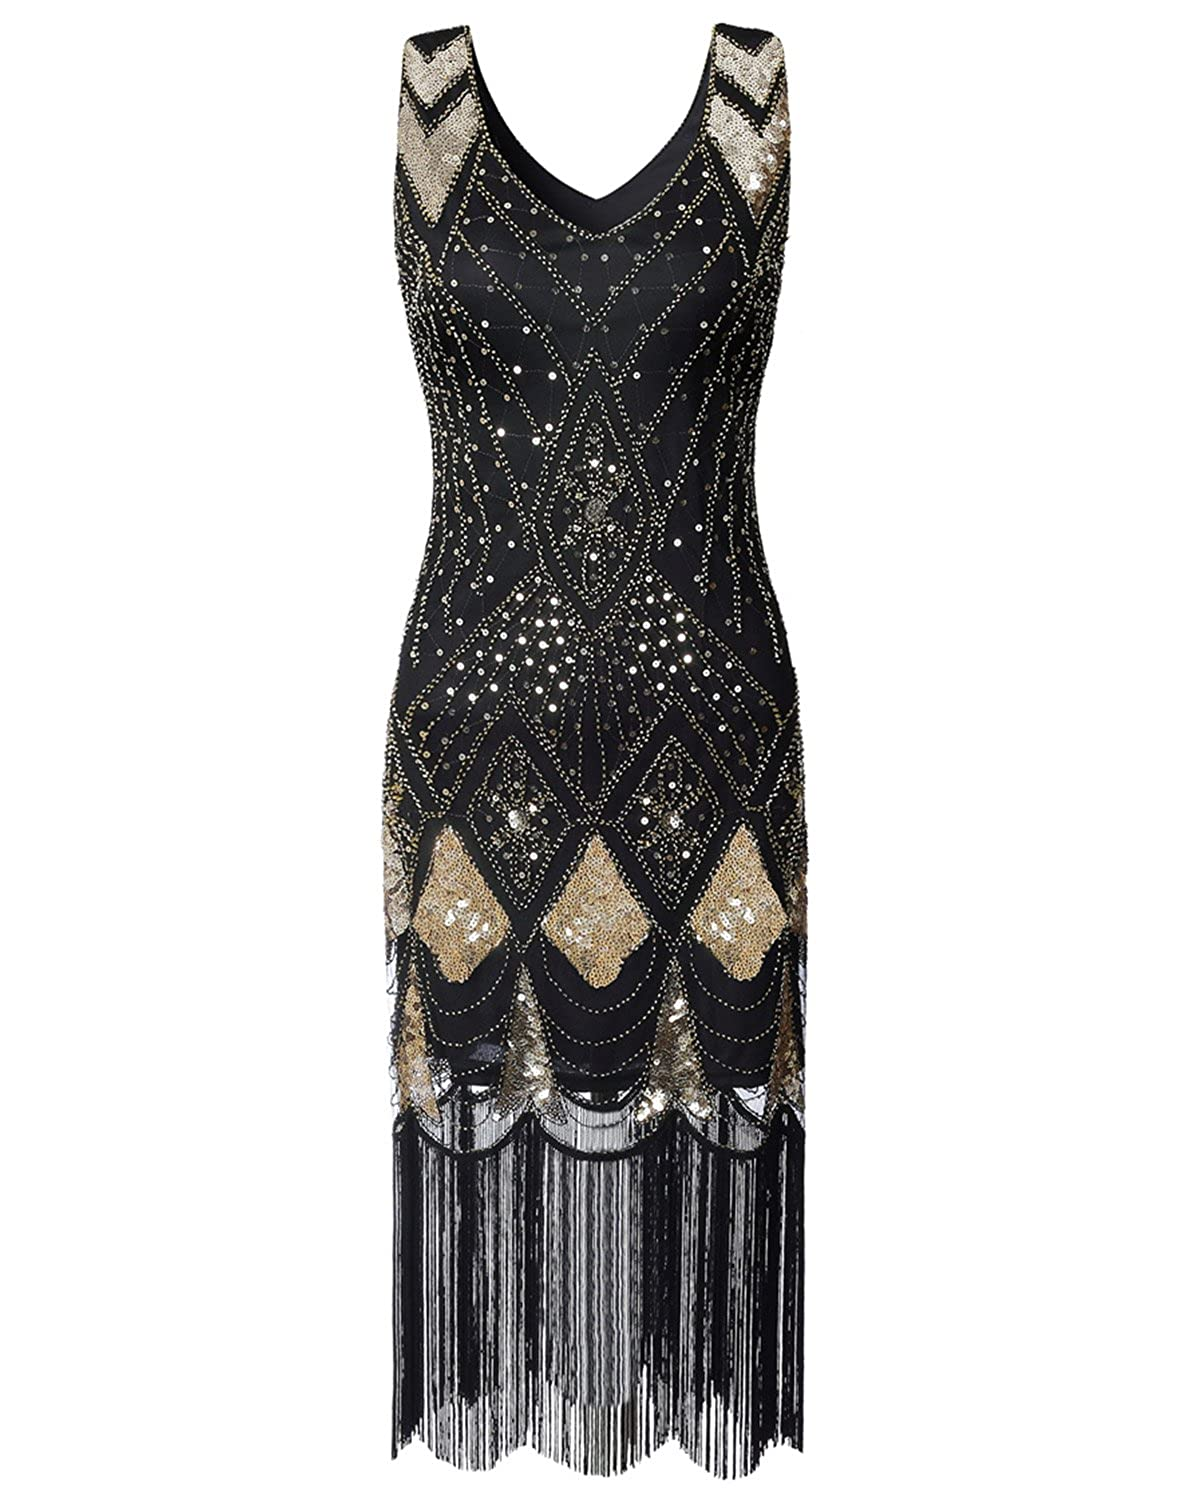 1920s Evening Dresses & Formal Gowns Women Flapper Dress 1920s Vintage - Double V Neck Gatsby Dress Fringed Art Decor Fancy Dress for Prom 20s Parties vintagepost $27.99 AT vintagedancer.com